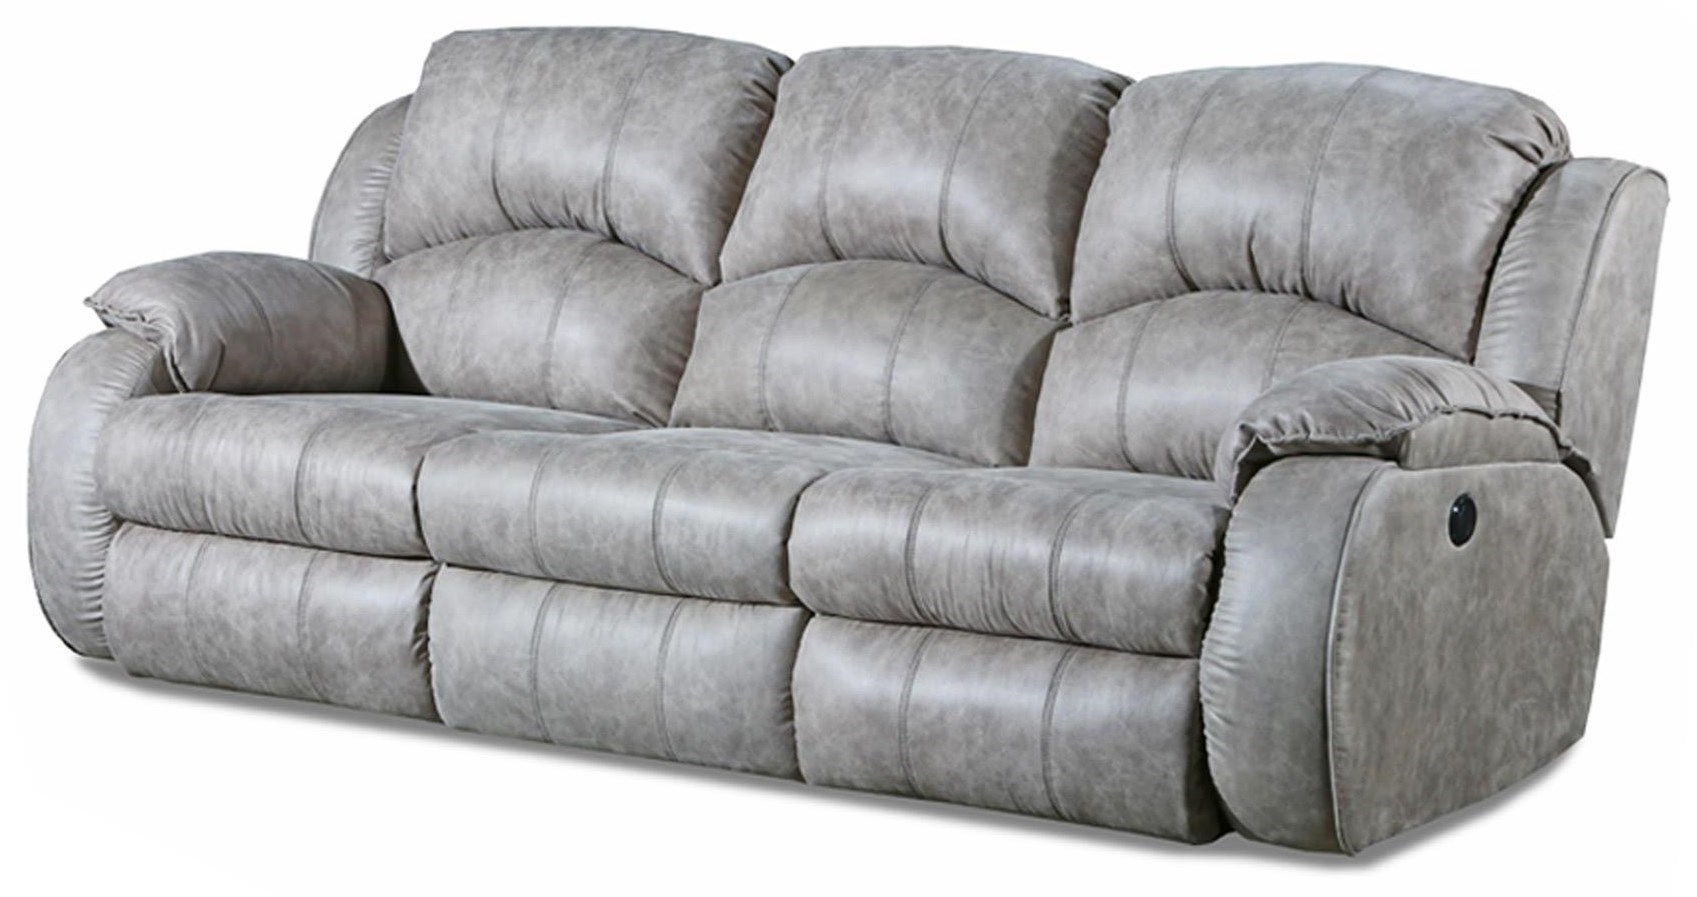 Superieur Southern Motion 705 173 09 Power Sofa